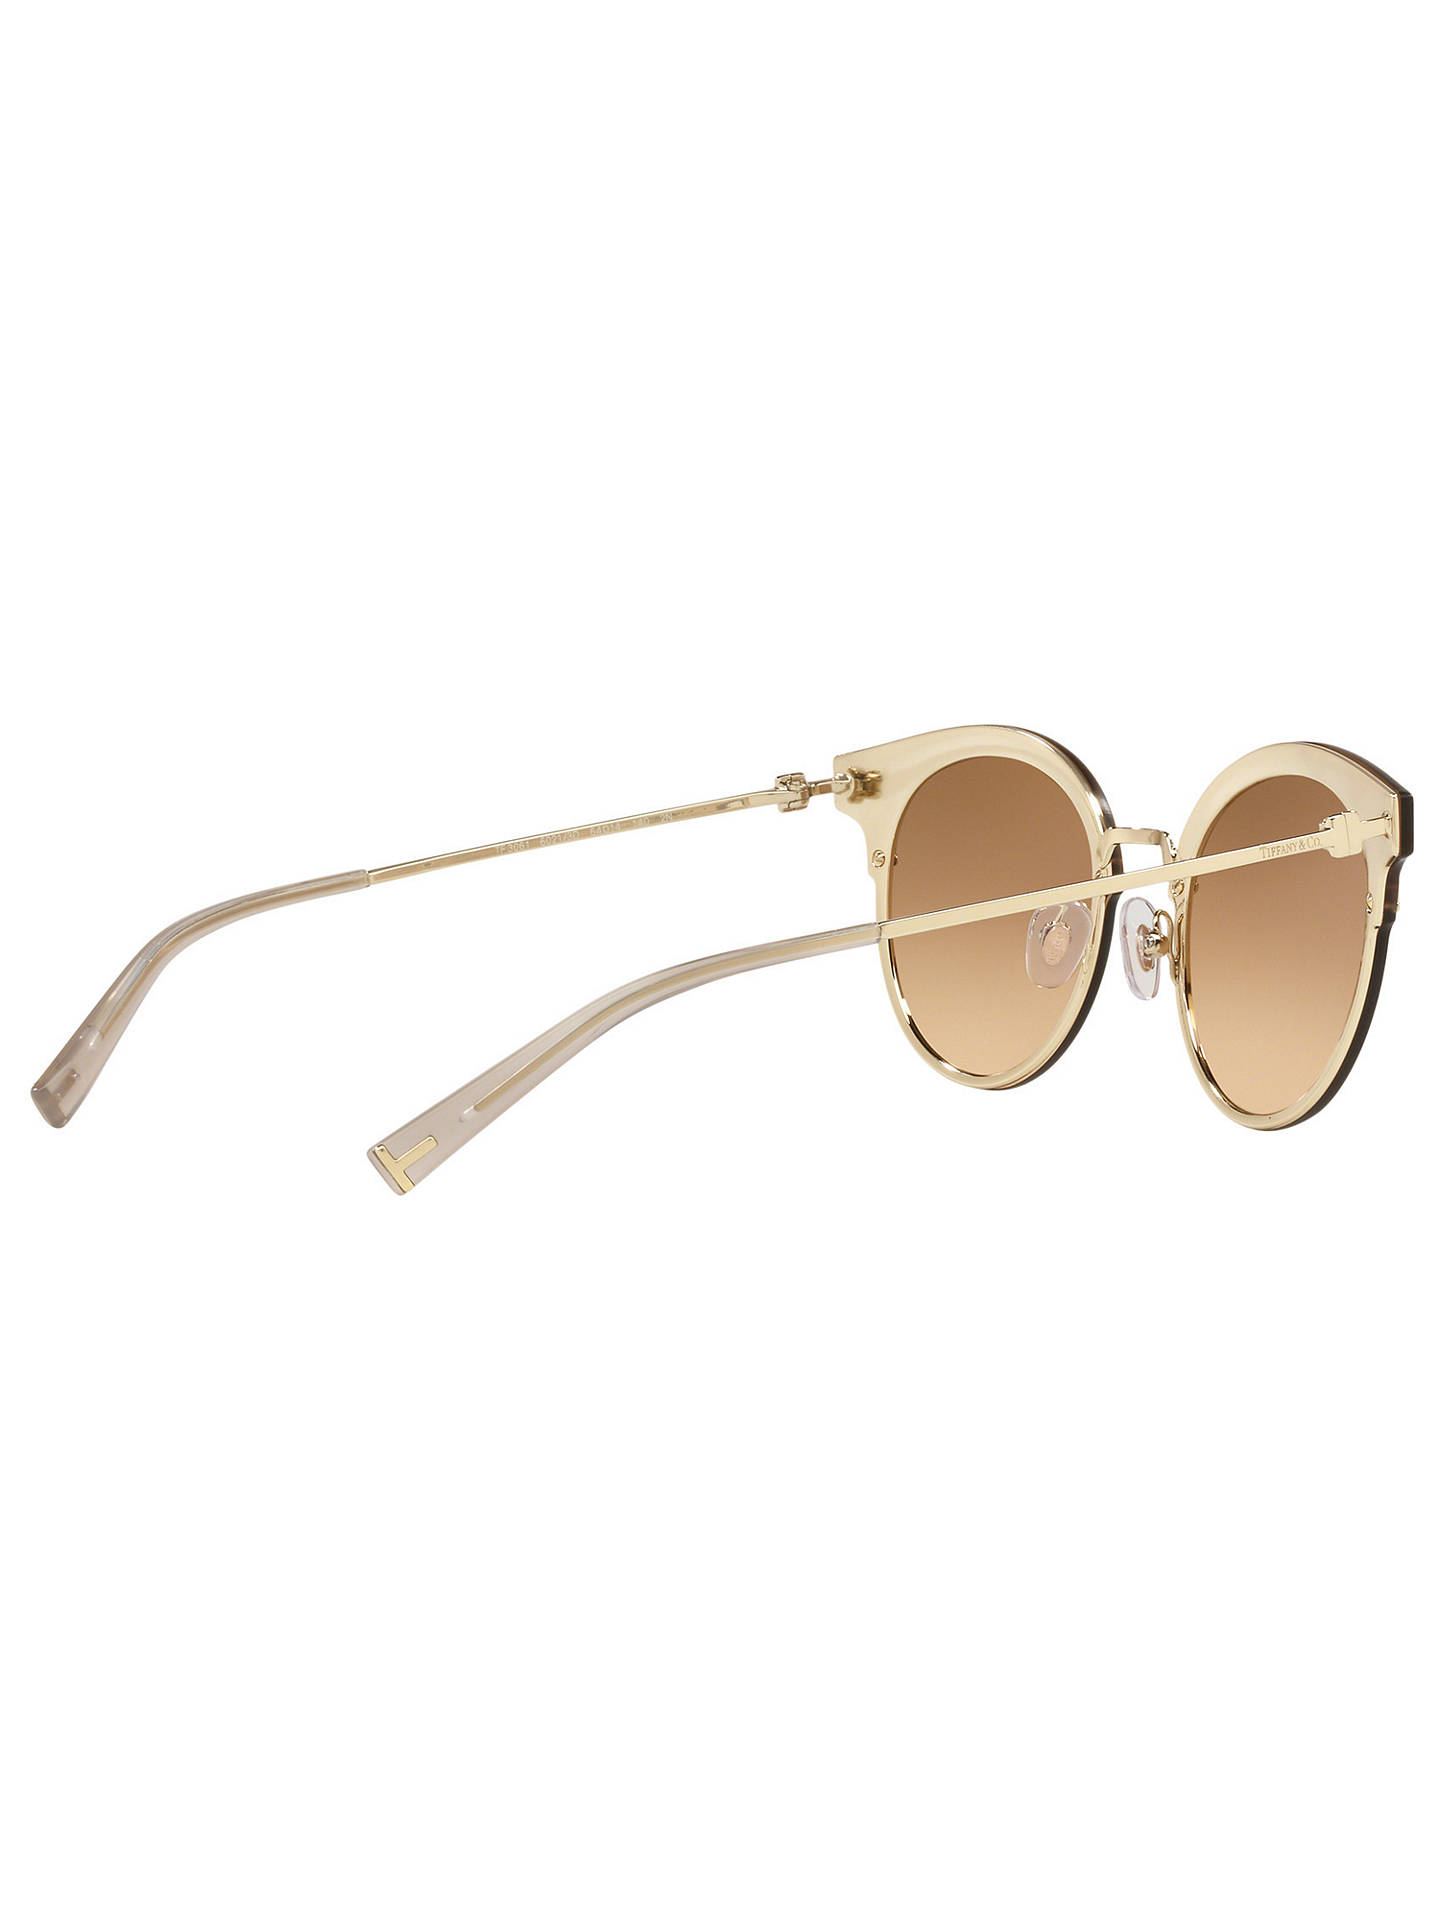 a30b163caea9 Tiffany   Co TF3049B Women s Round Sunglasses at John Lewis   Partners